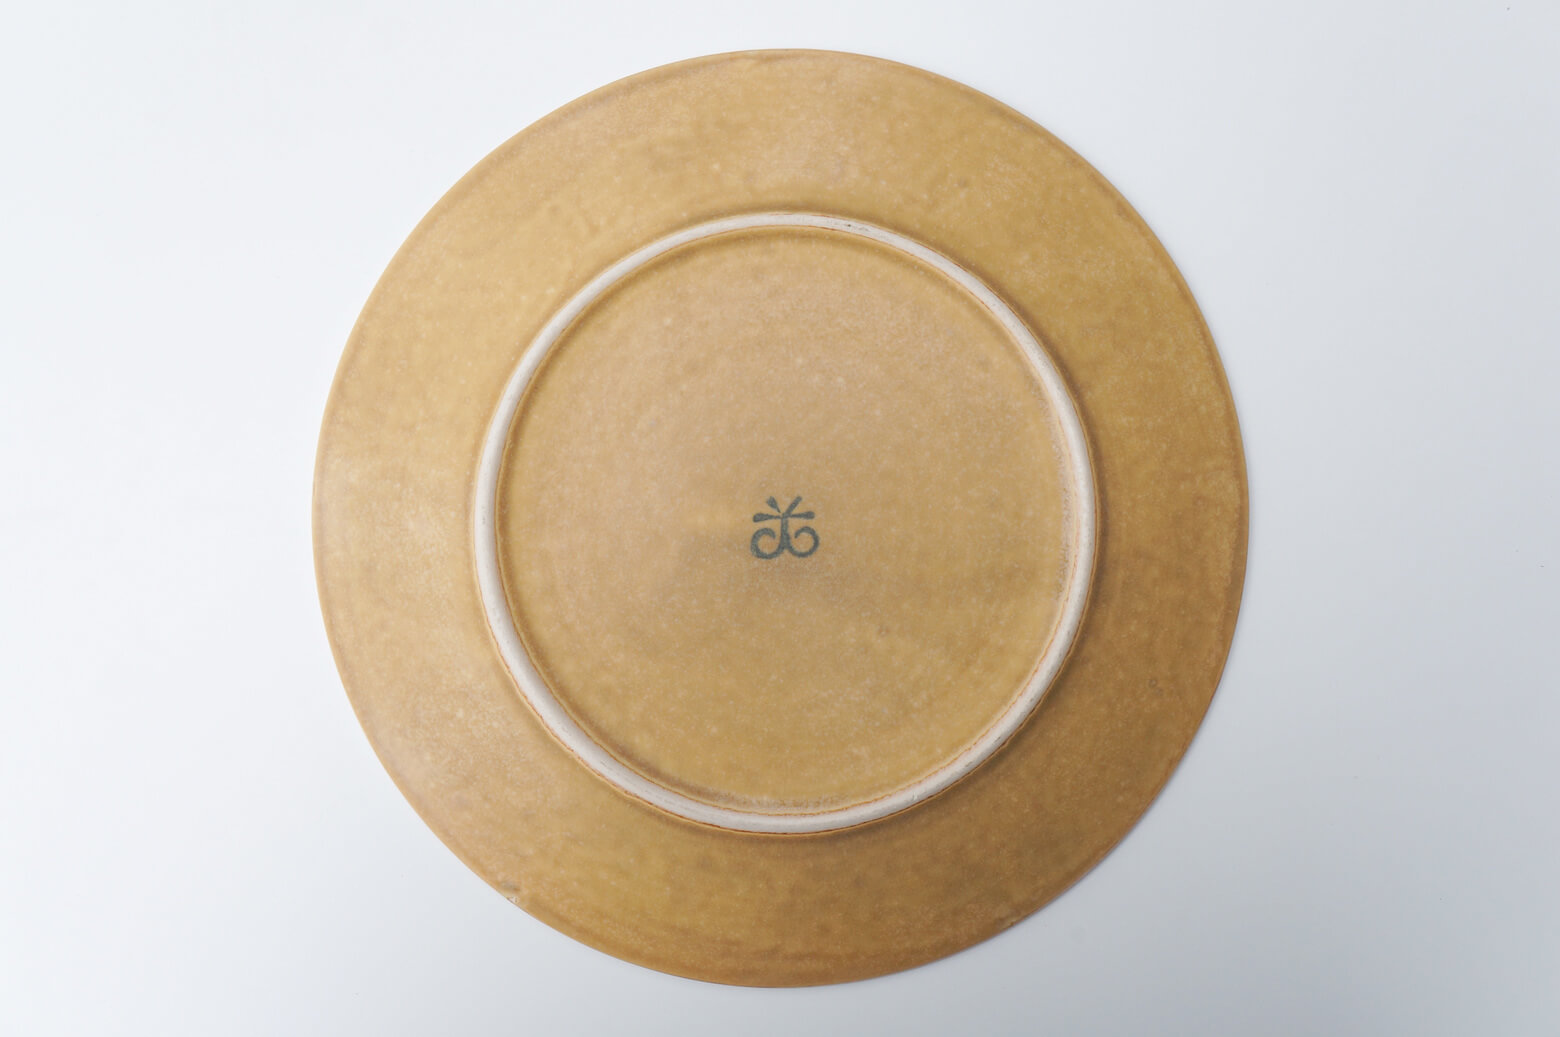 Kronjyden relief dinner plate 25cm 1 /クロニーデン レリーフ ディナープレート 25cm 1